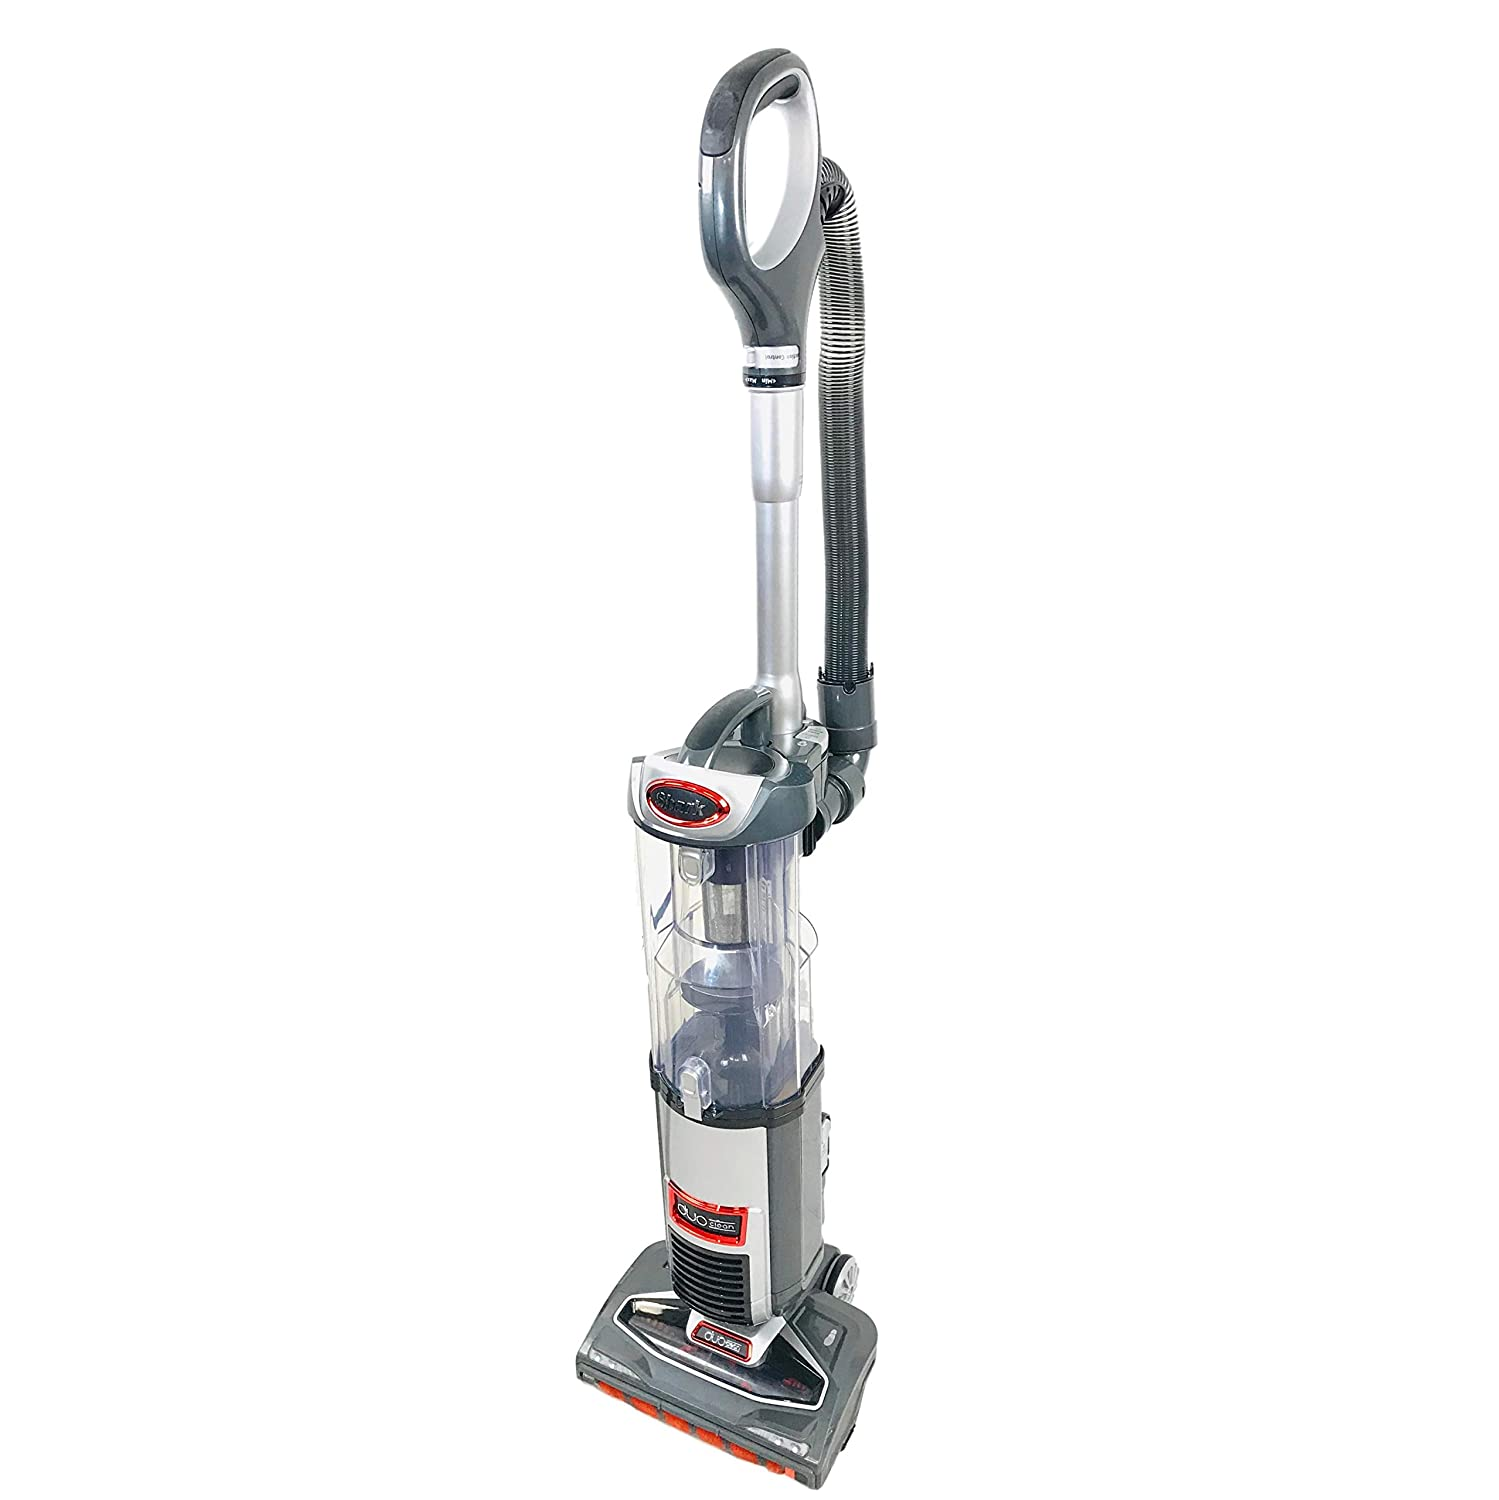 Shark DuoClean Technology Slim Upright Vacuum NV200Q HEPA Filter Powerful Lightweight with Advanced Swivel Steering, Flexi Crevice Tool and Under-Appliance Wand NV200QGR (Renewed) (Platinum)